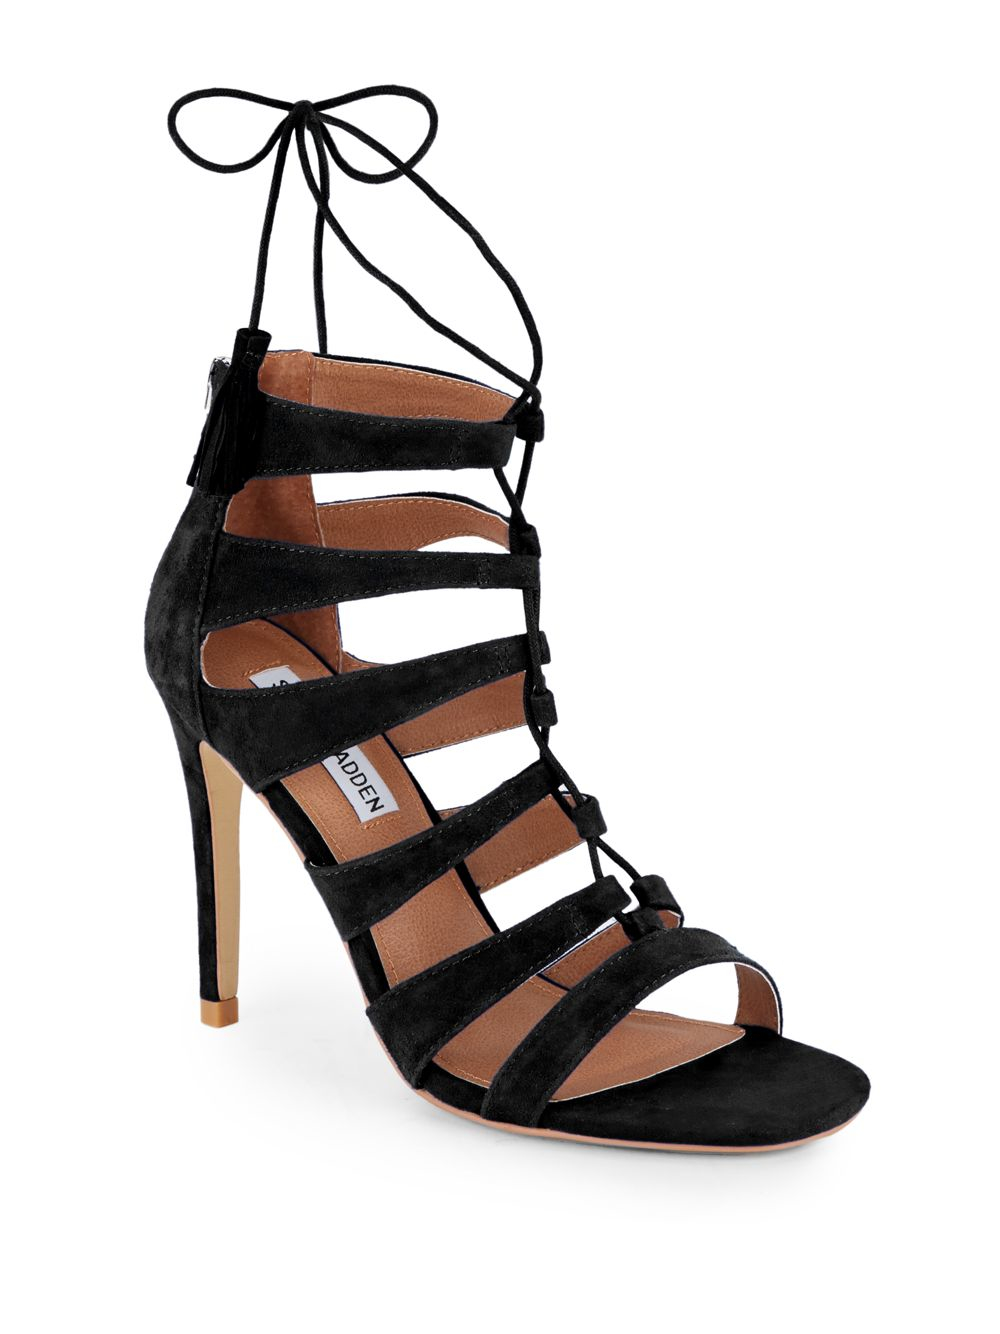 f83574ad23 Steve Madden Faraah Suede Strappy Open-toe Sandals in Black - Lyst